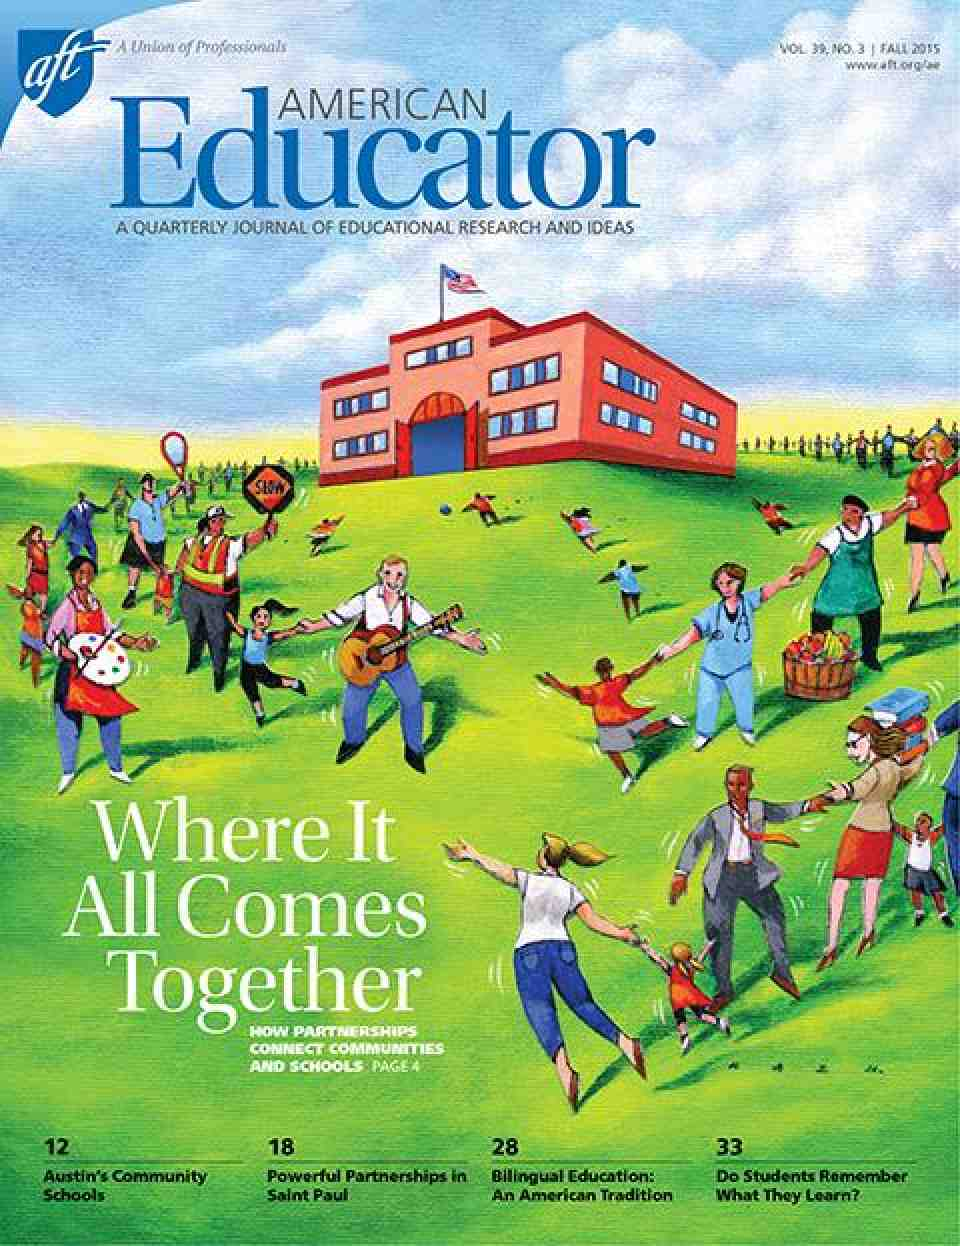 American Educator Fall 2015